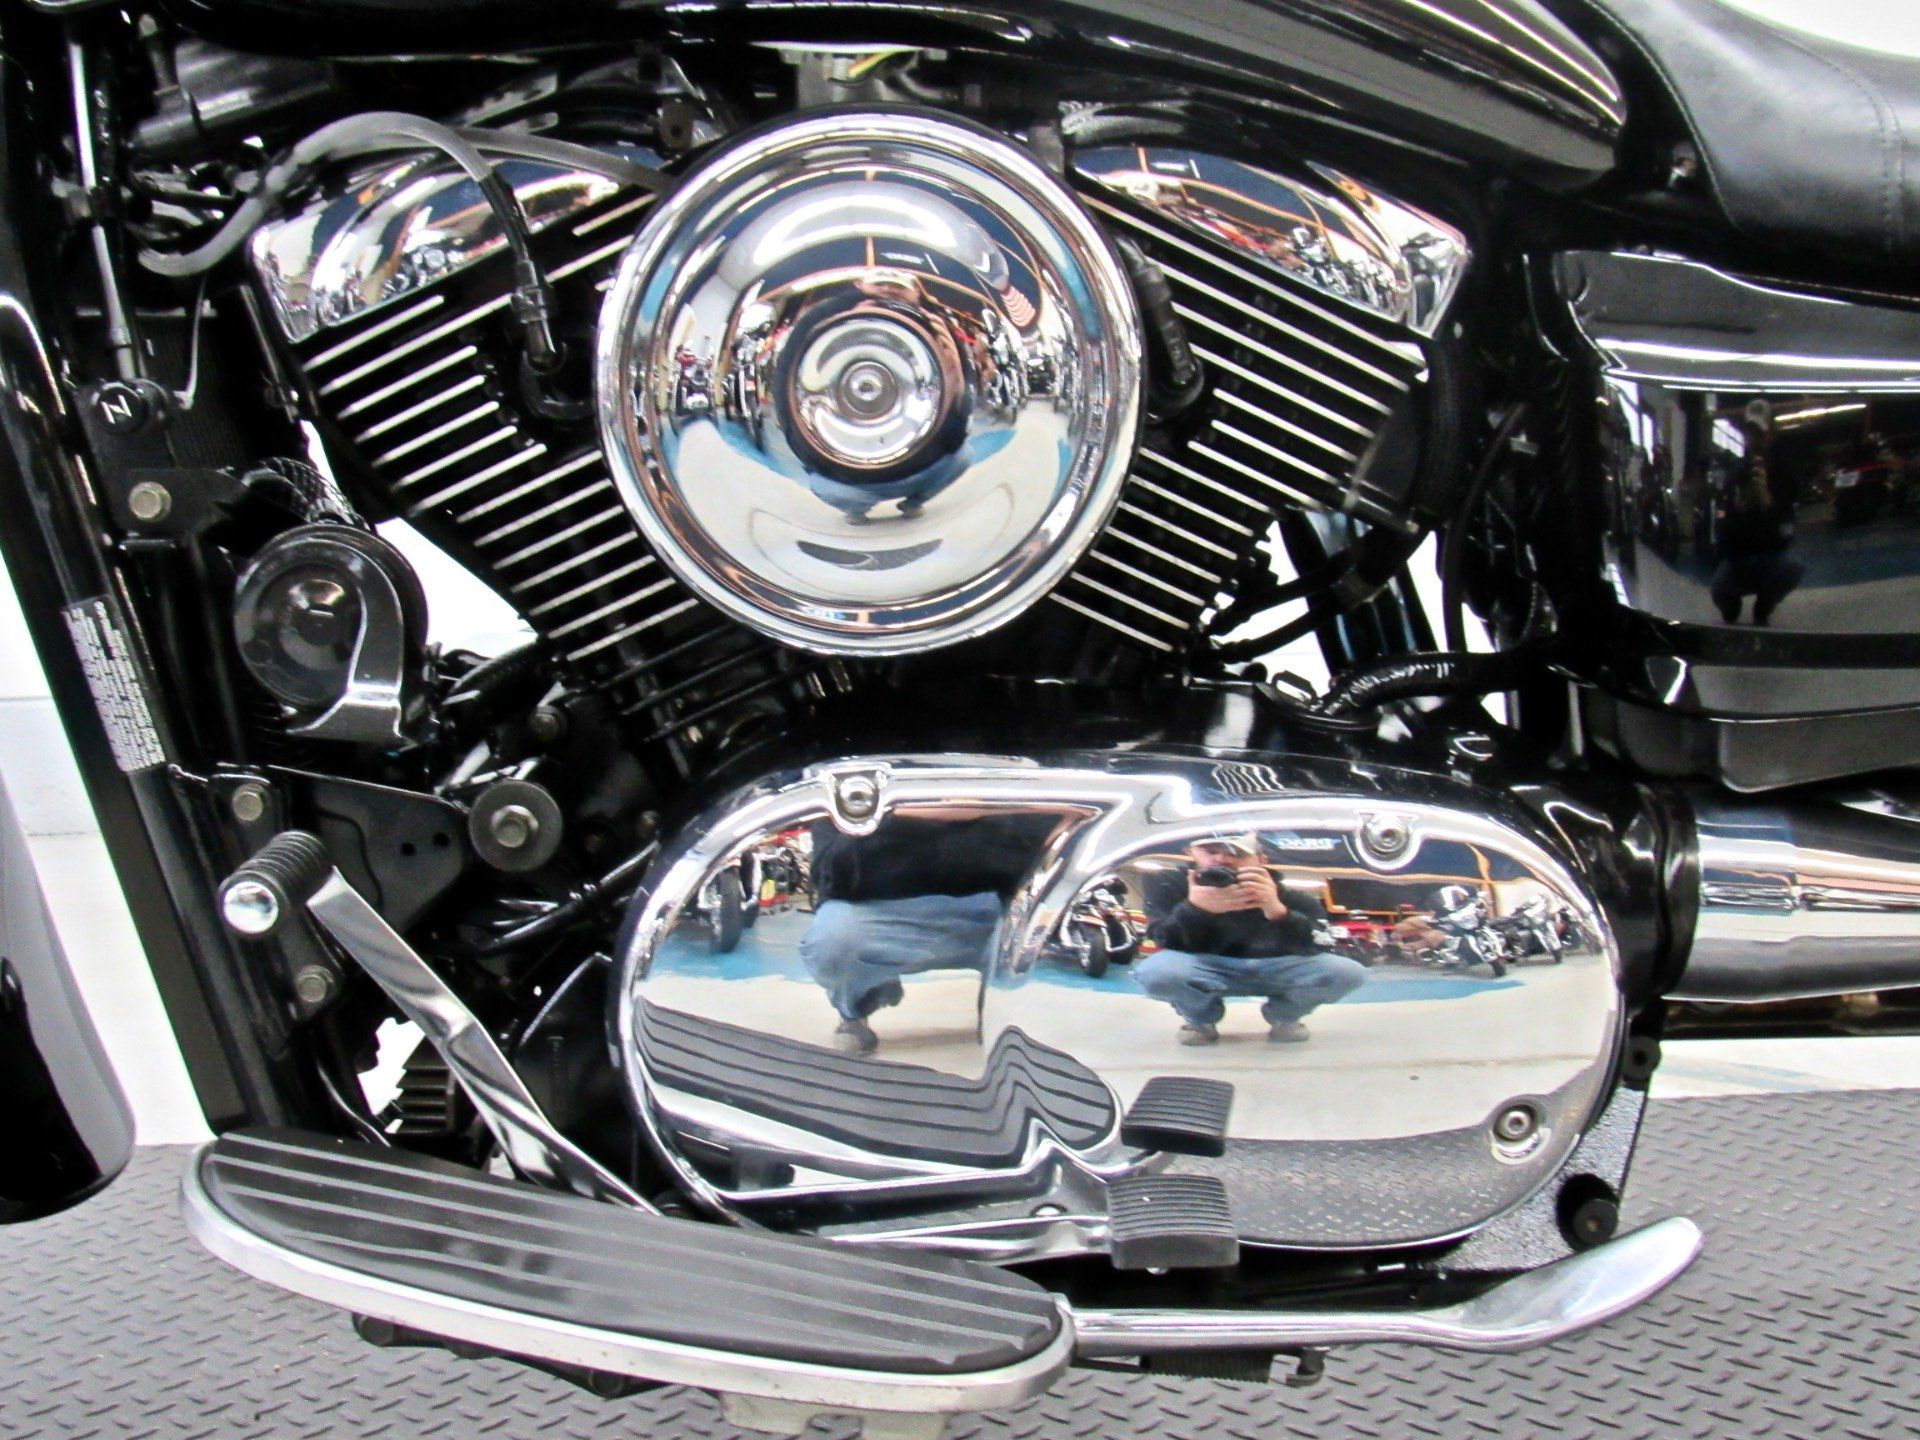 2006 Kawasaki Vulcan® 1600 Classic in Fredericksburg, Virginia - Photo 19